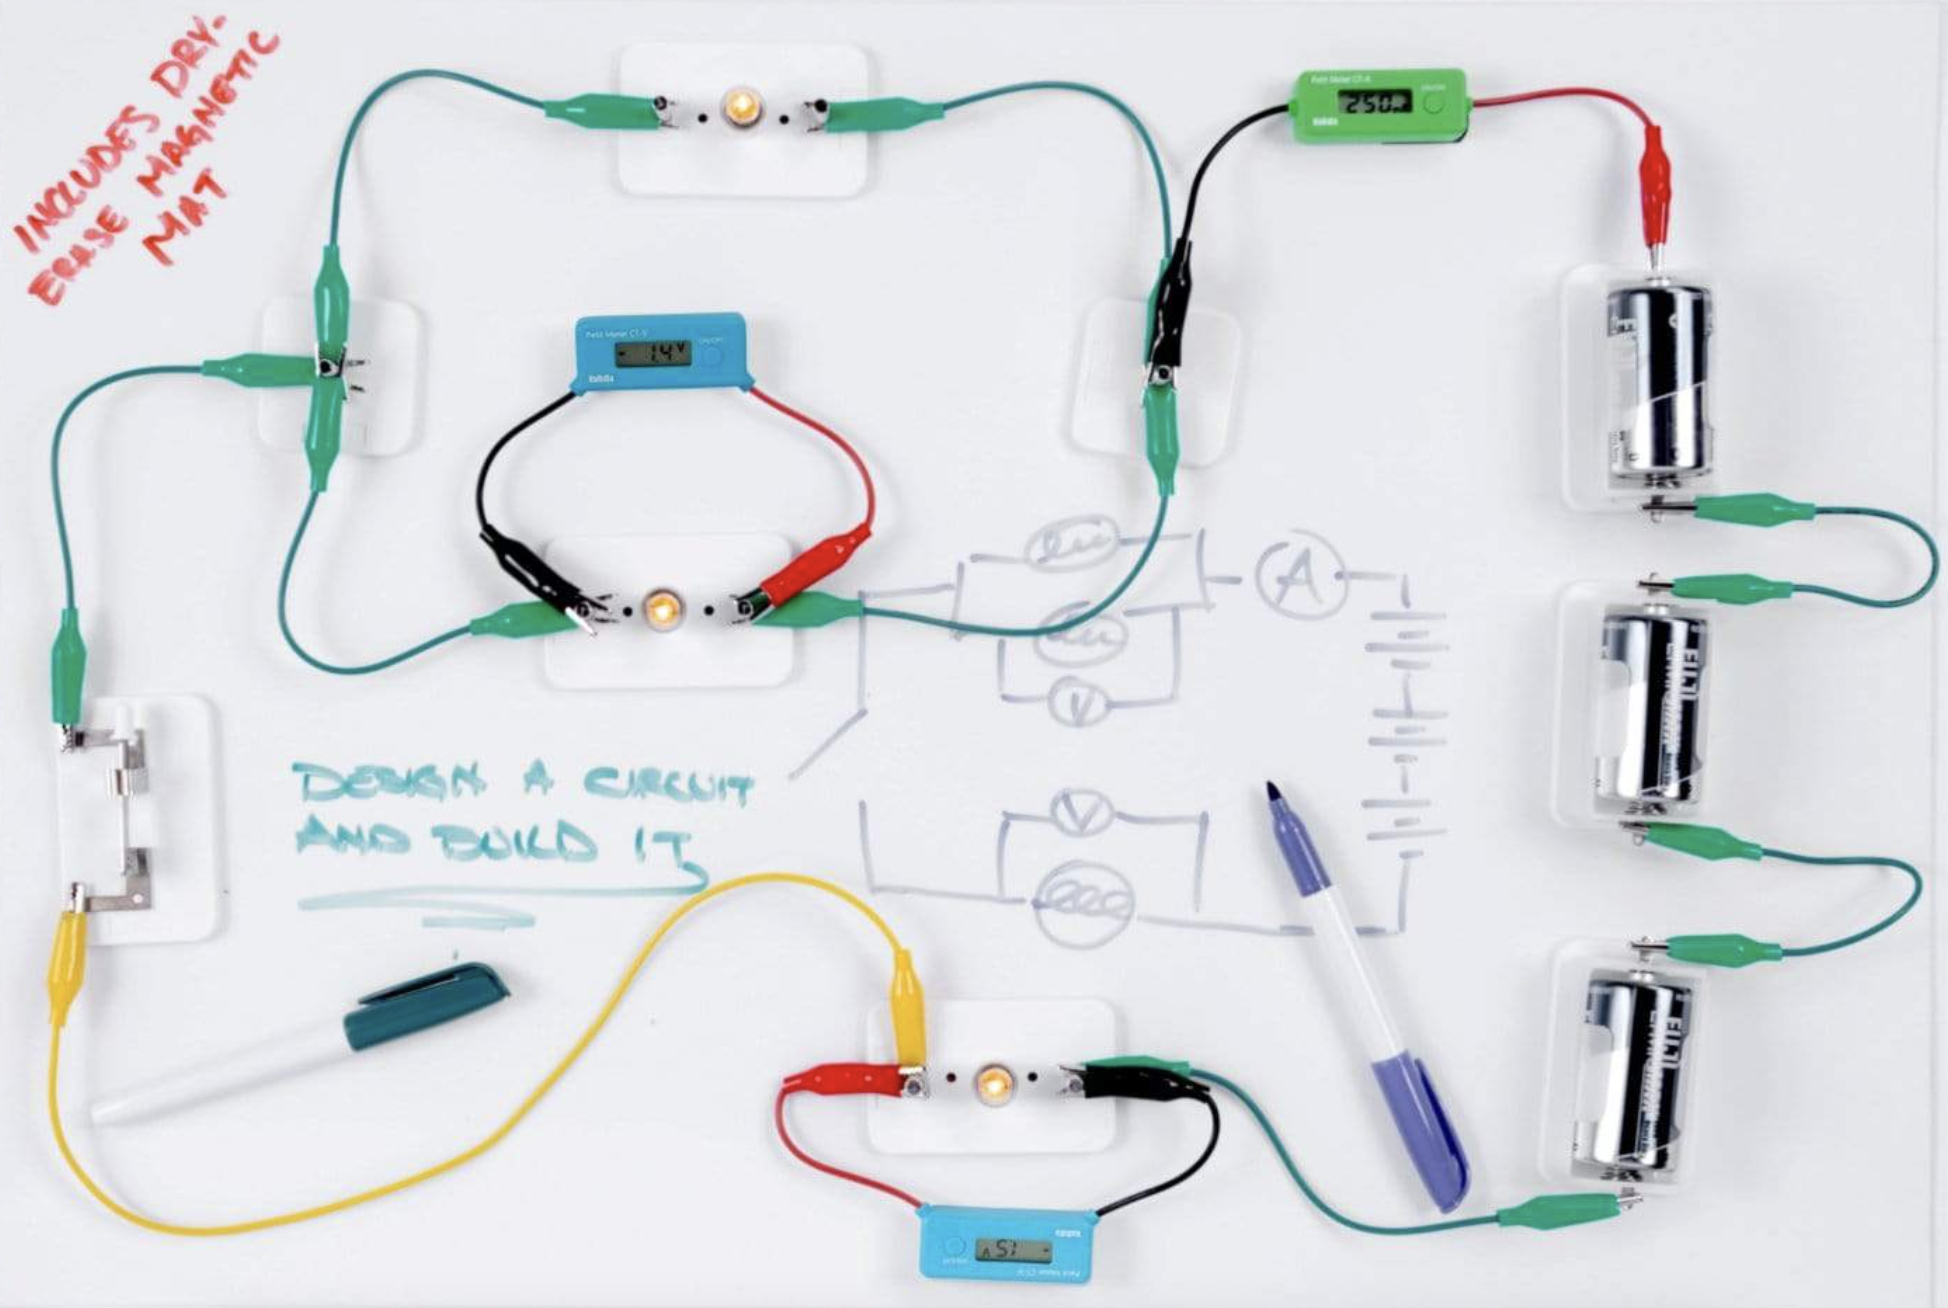 A Beginner's Guide To Understanding Electrical Circuits